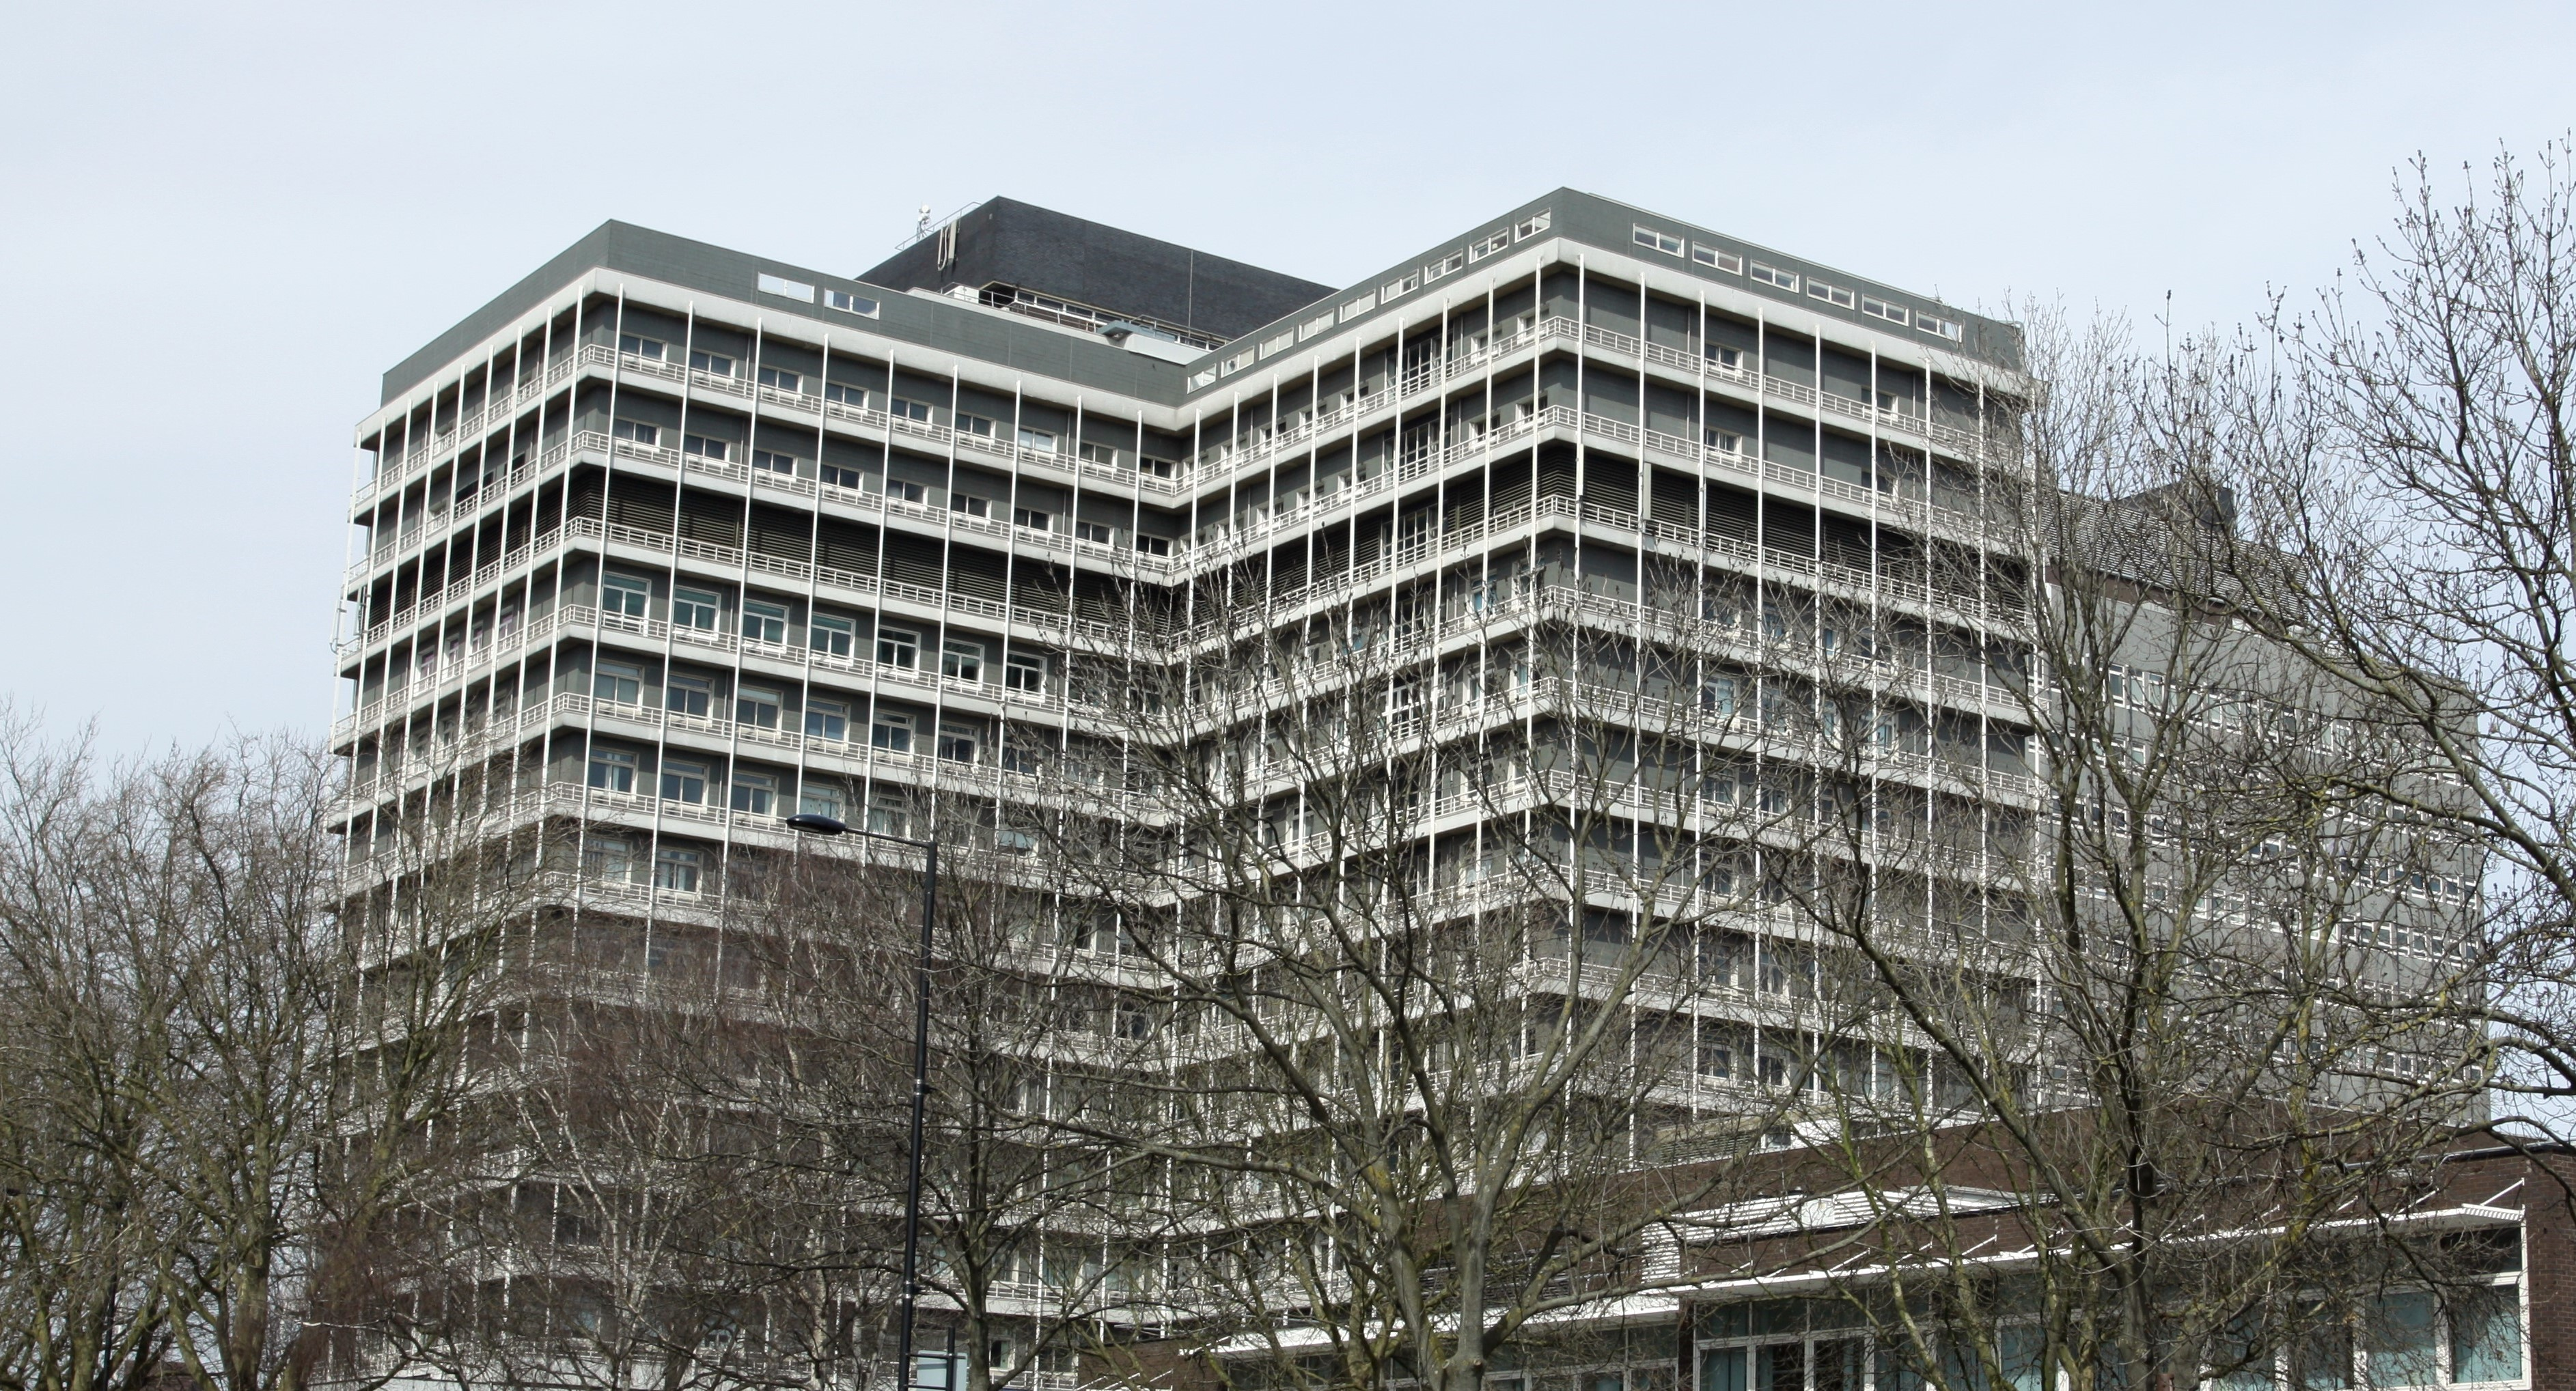 Charing_Cross_Hospital_in_London,_spring_2013_(15)